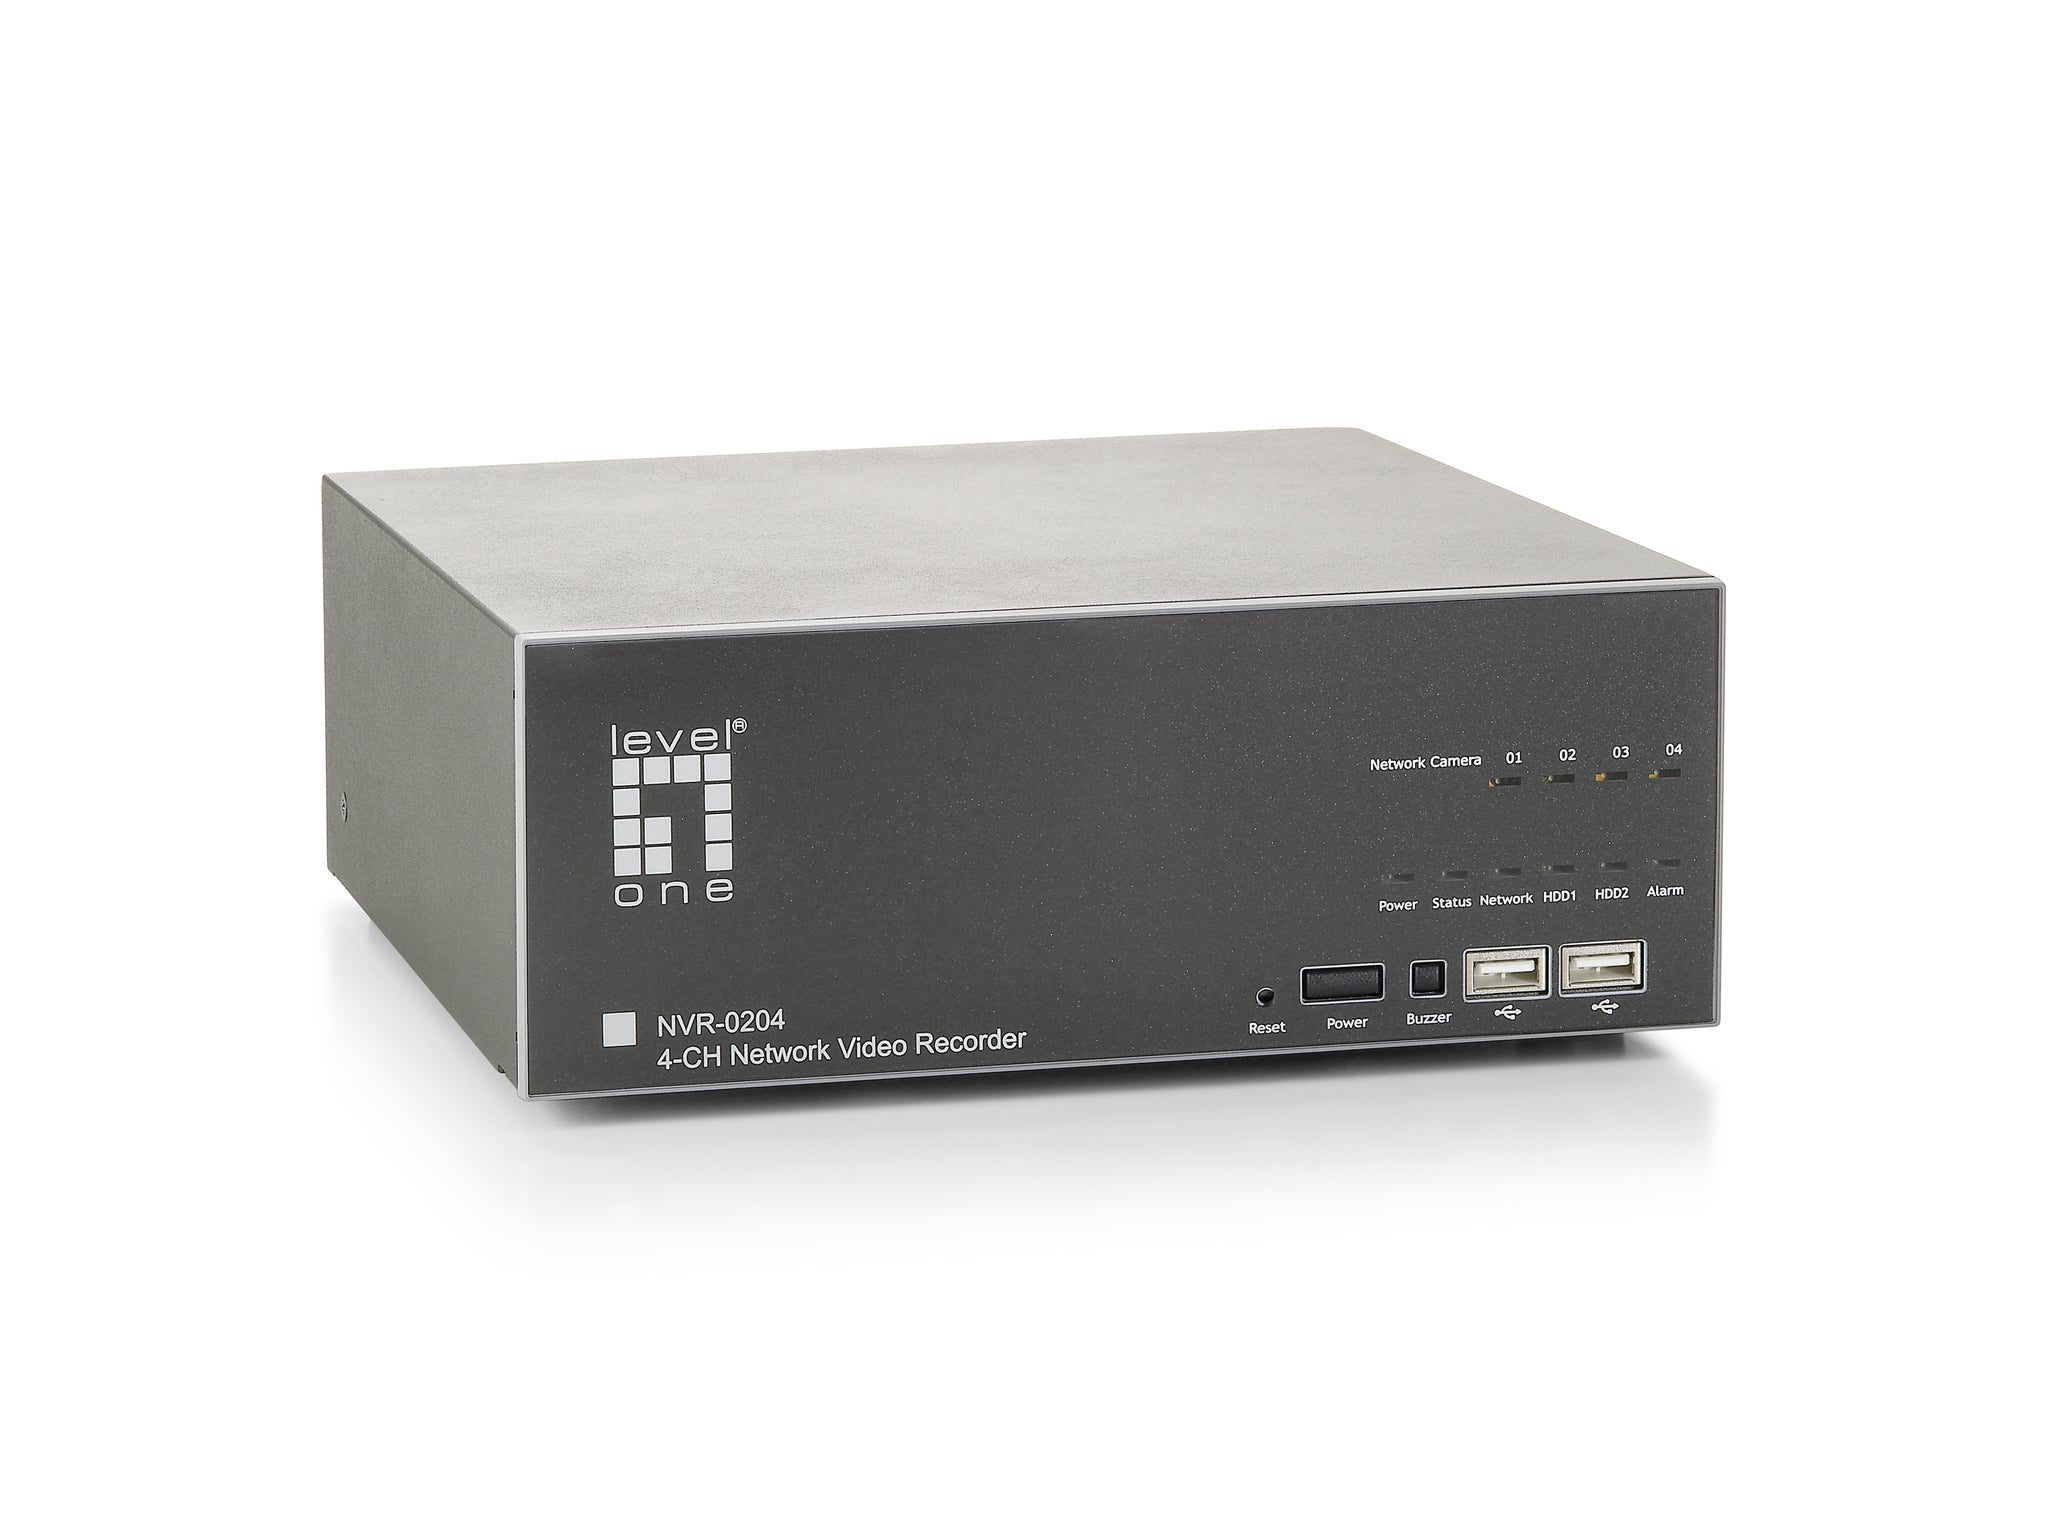 NVR-0204 4-CH Network Video Recorder